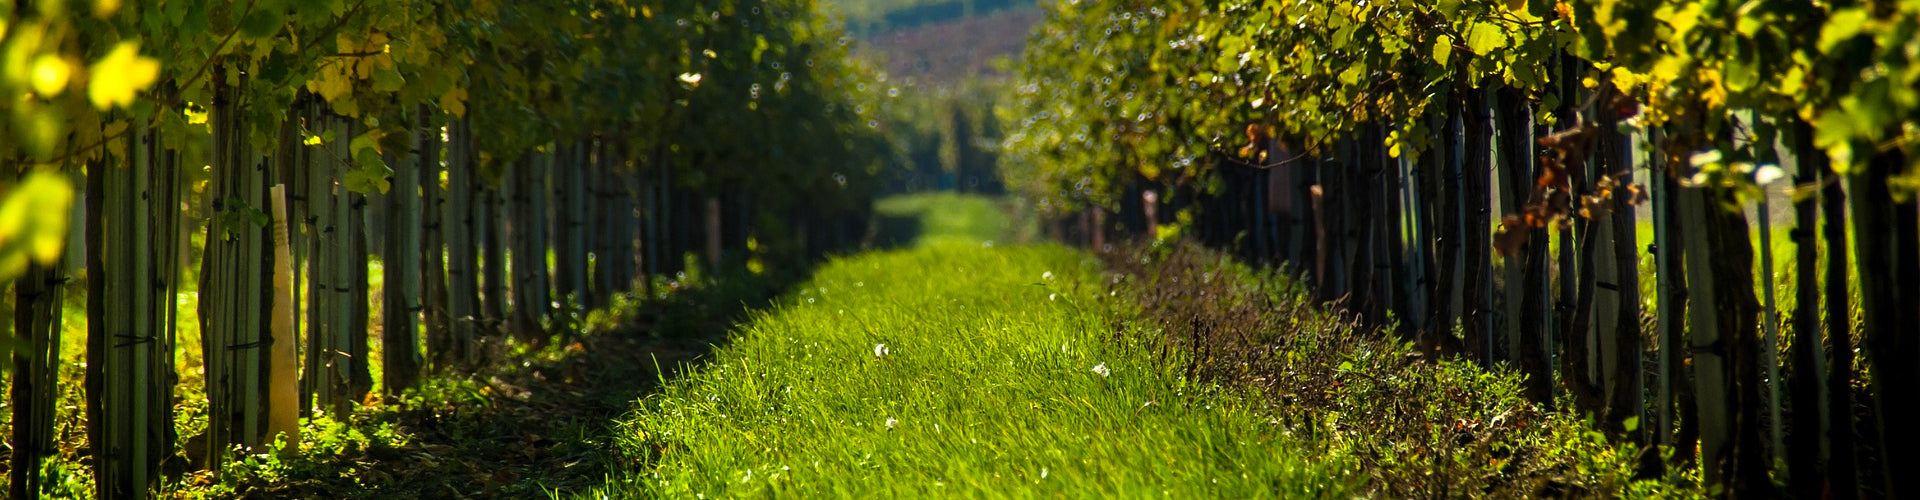 Healthy Organic Vines in Vineyard